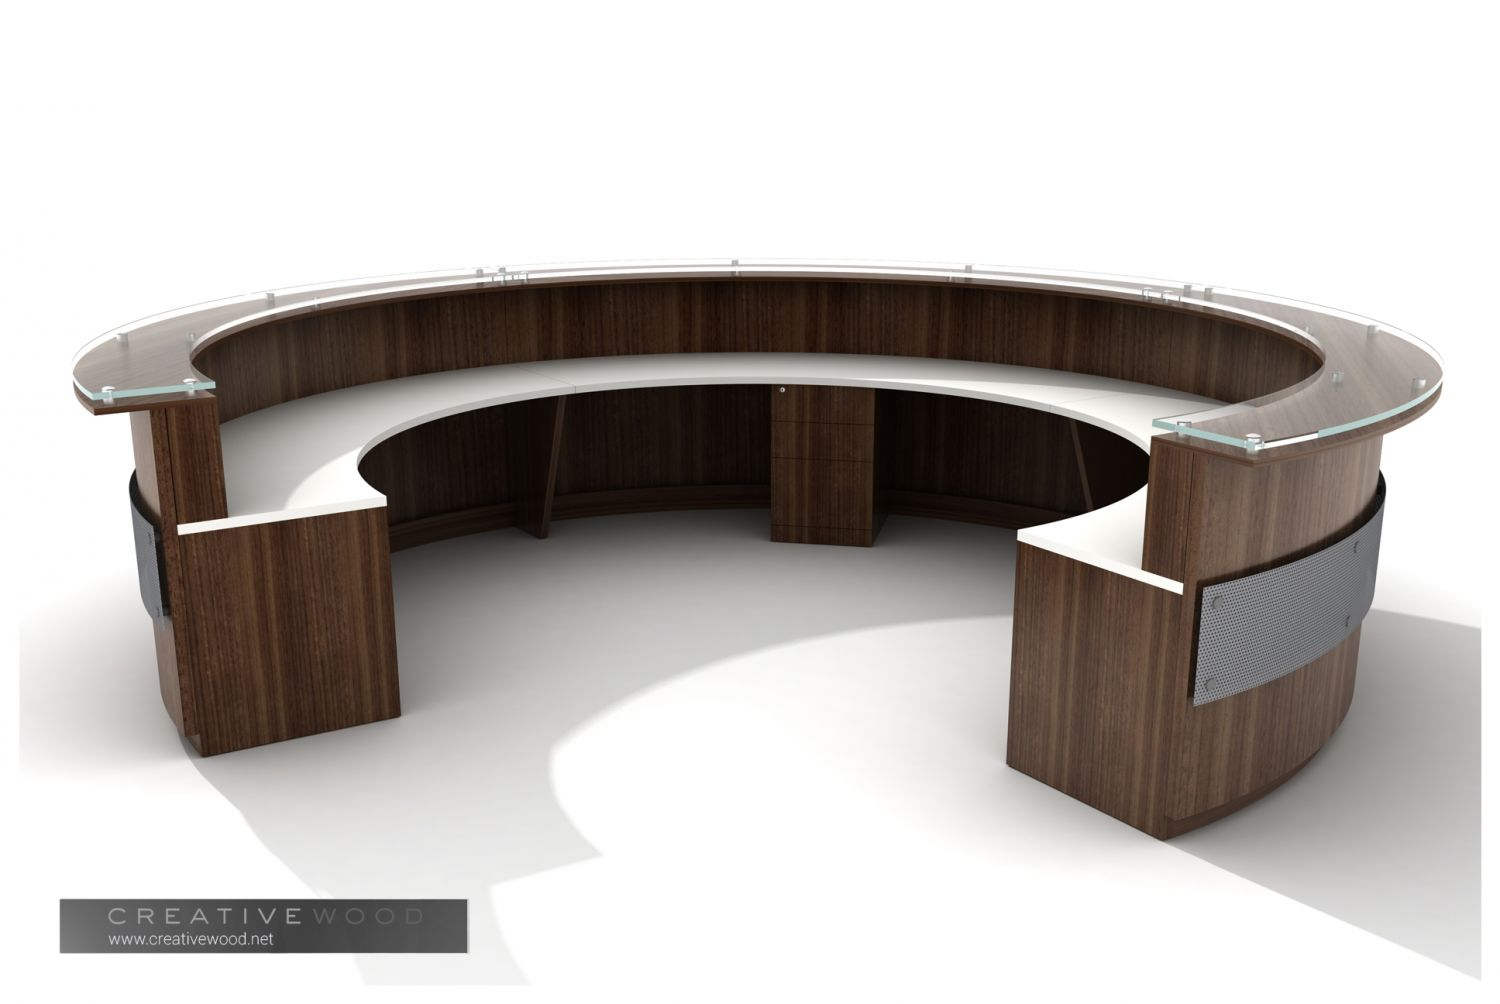 Office reception desk with built-in lighting by Creative Wood